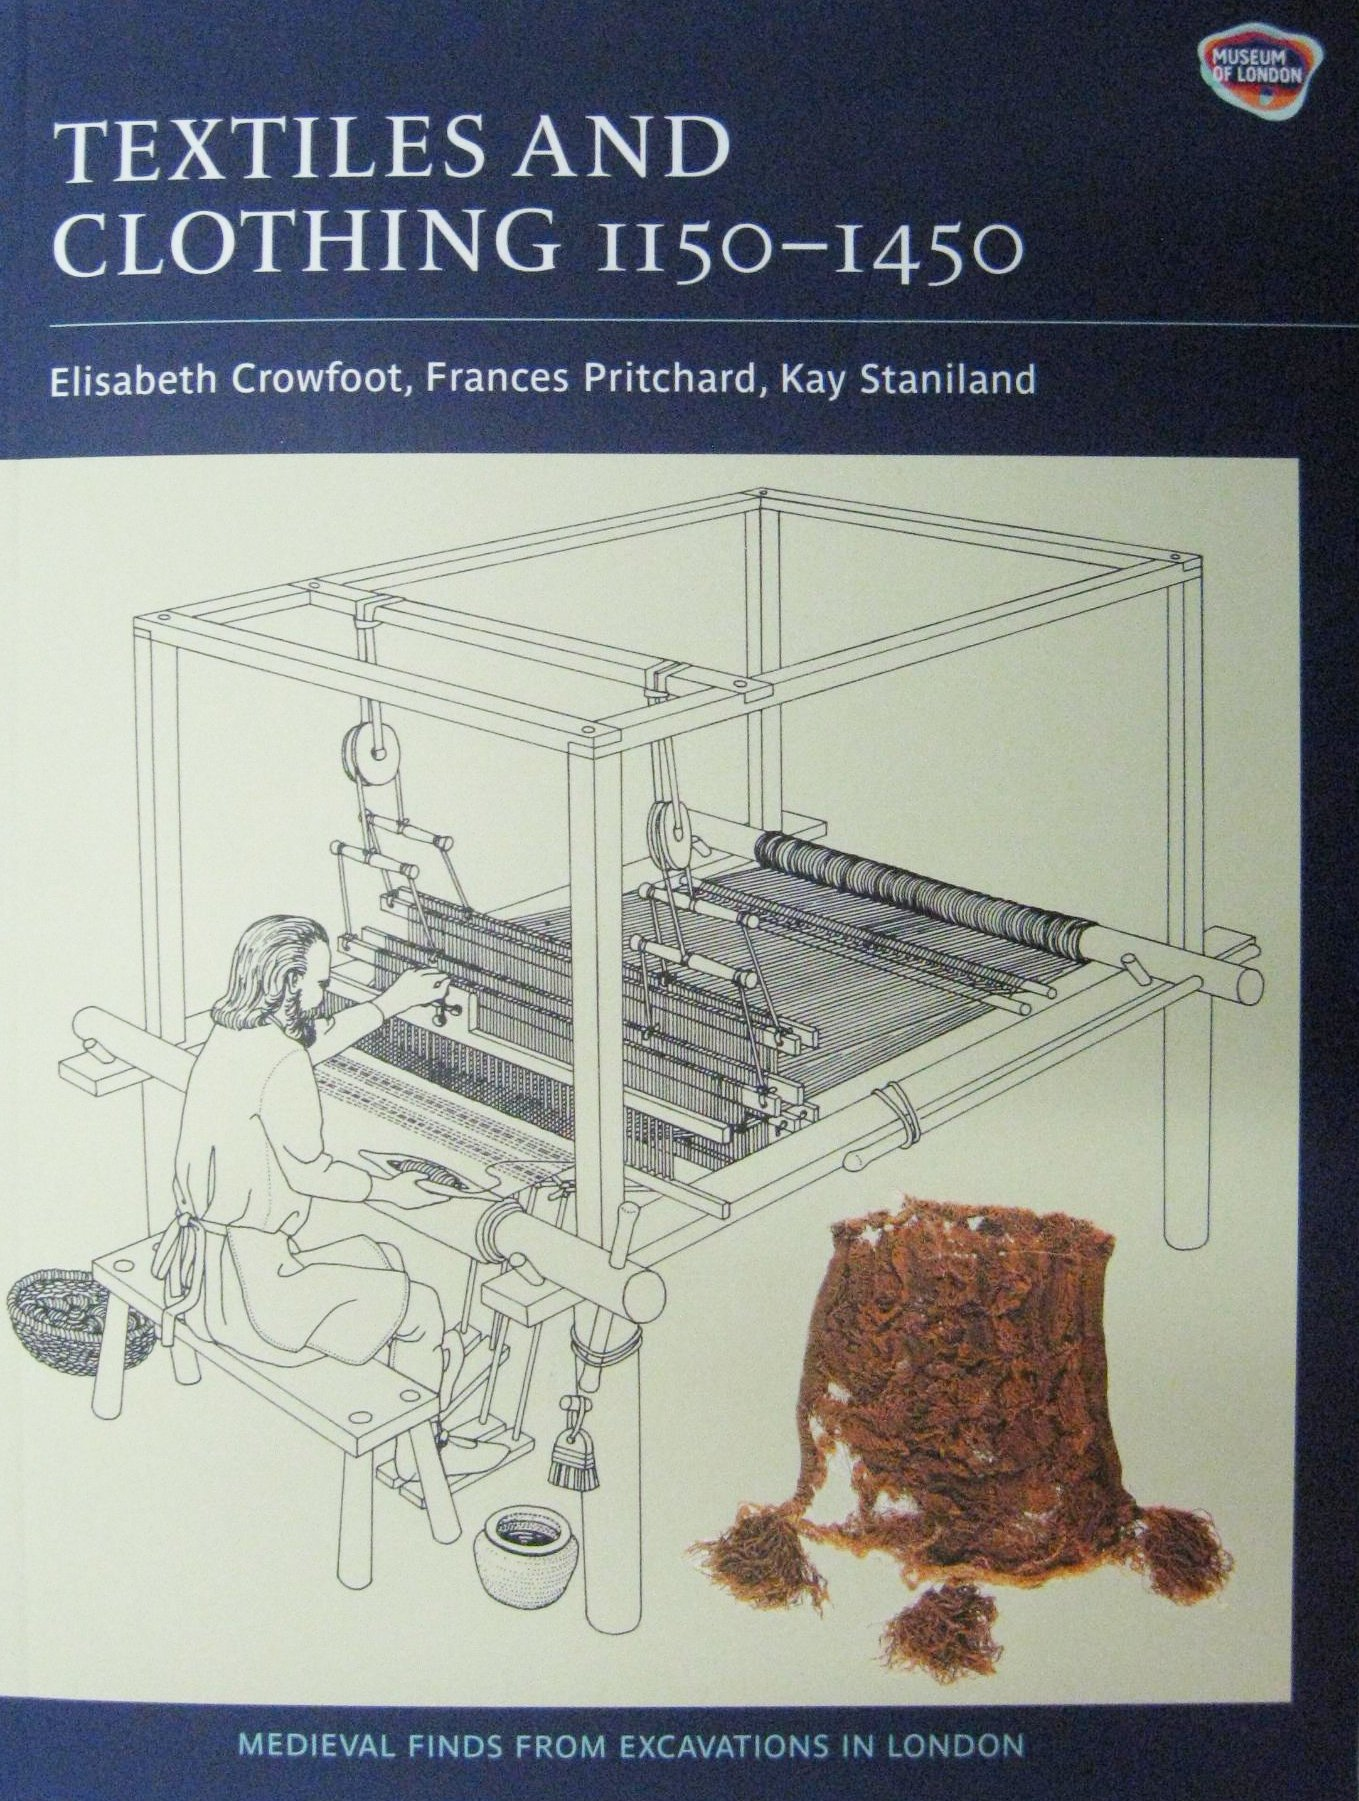 Textiles and Clothing, C.1150-1450: Finds from Medieval Excavations in London (Medieval Finds from Excavations in London, Band 4)